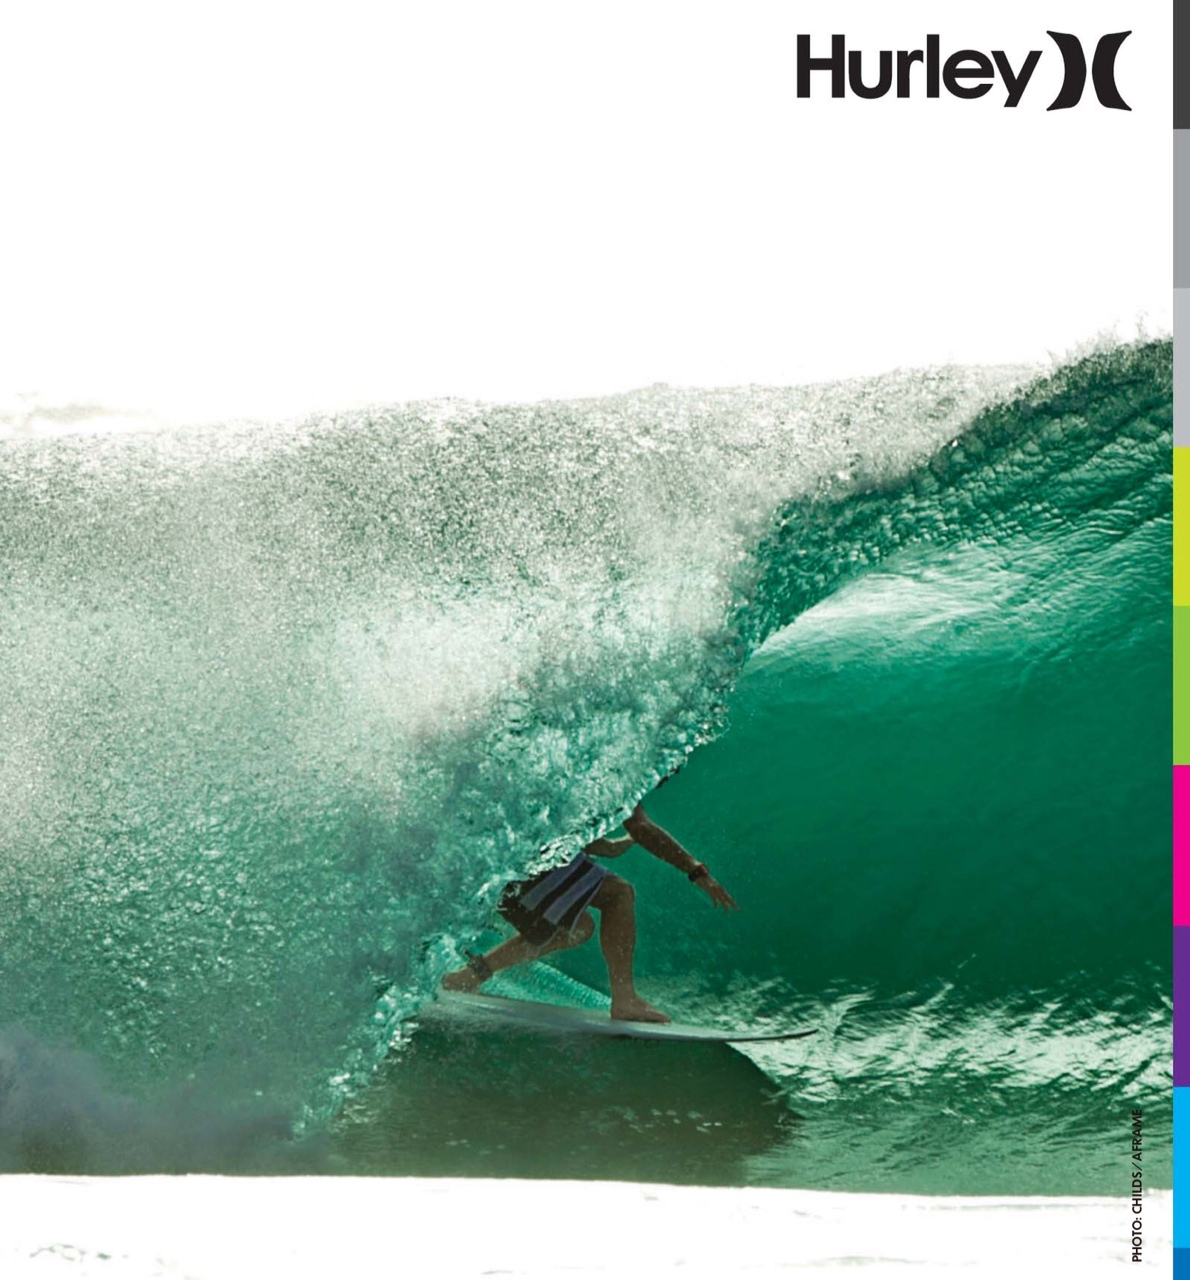 Presented by HURLEY